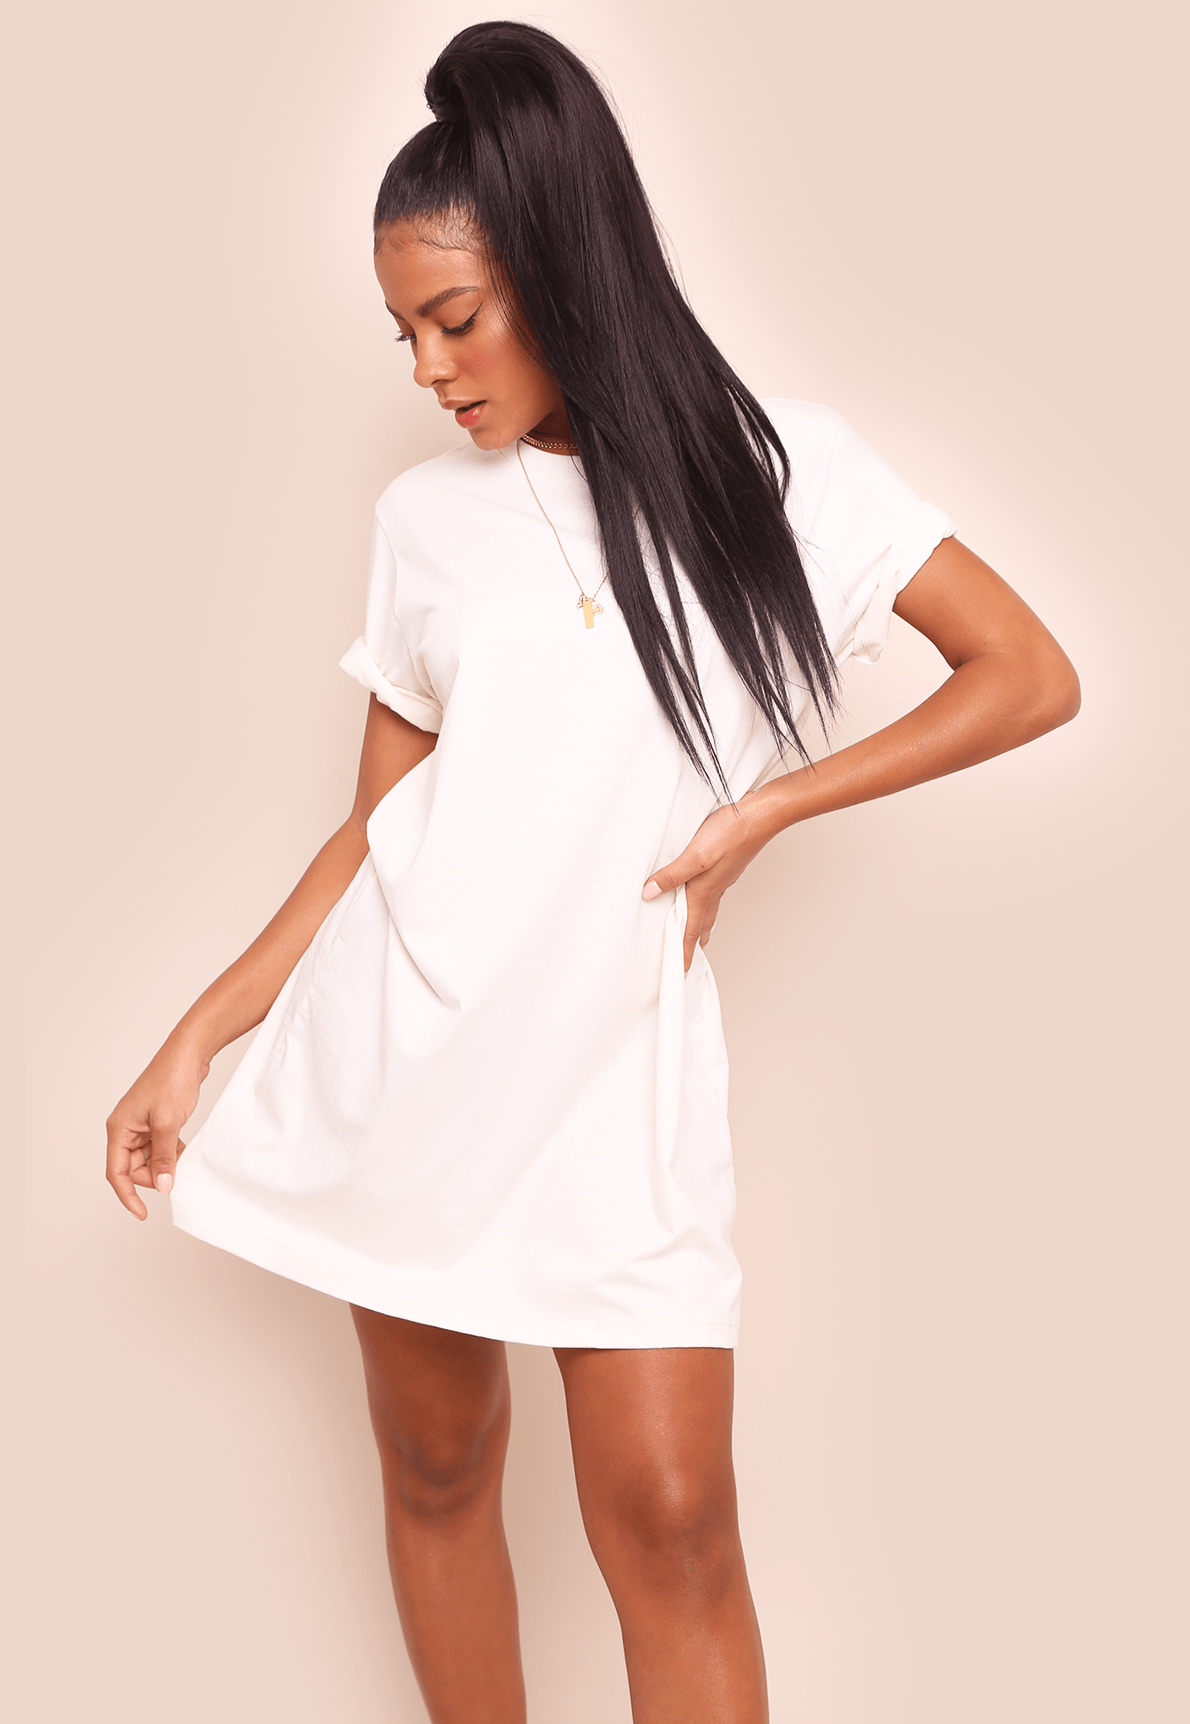 32810-Vestido-California-Days-off-white-mundo-lolita-02